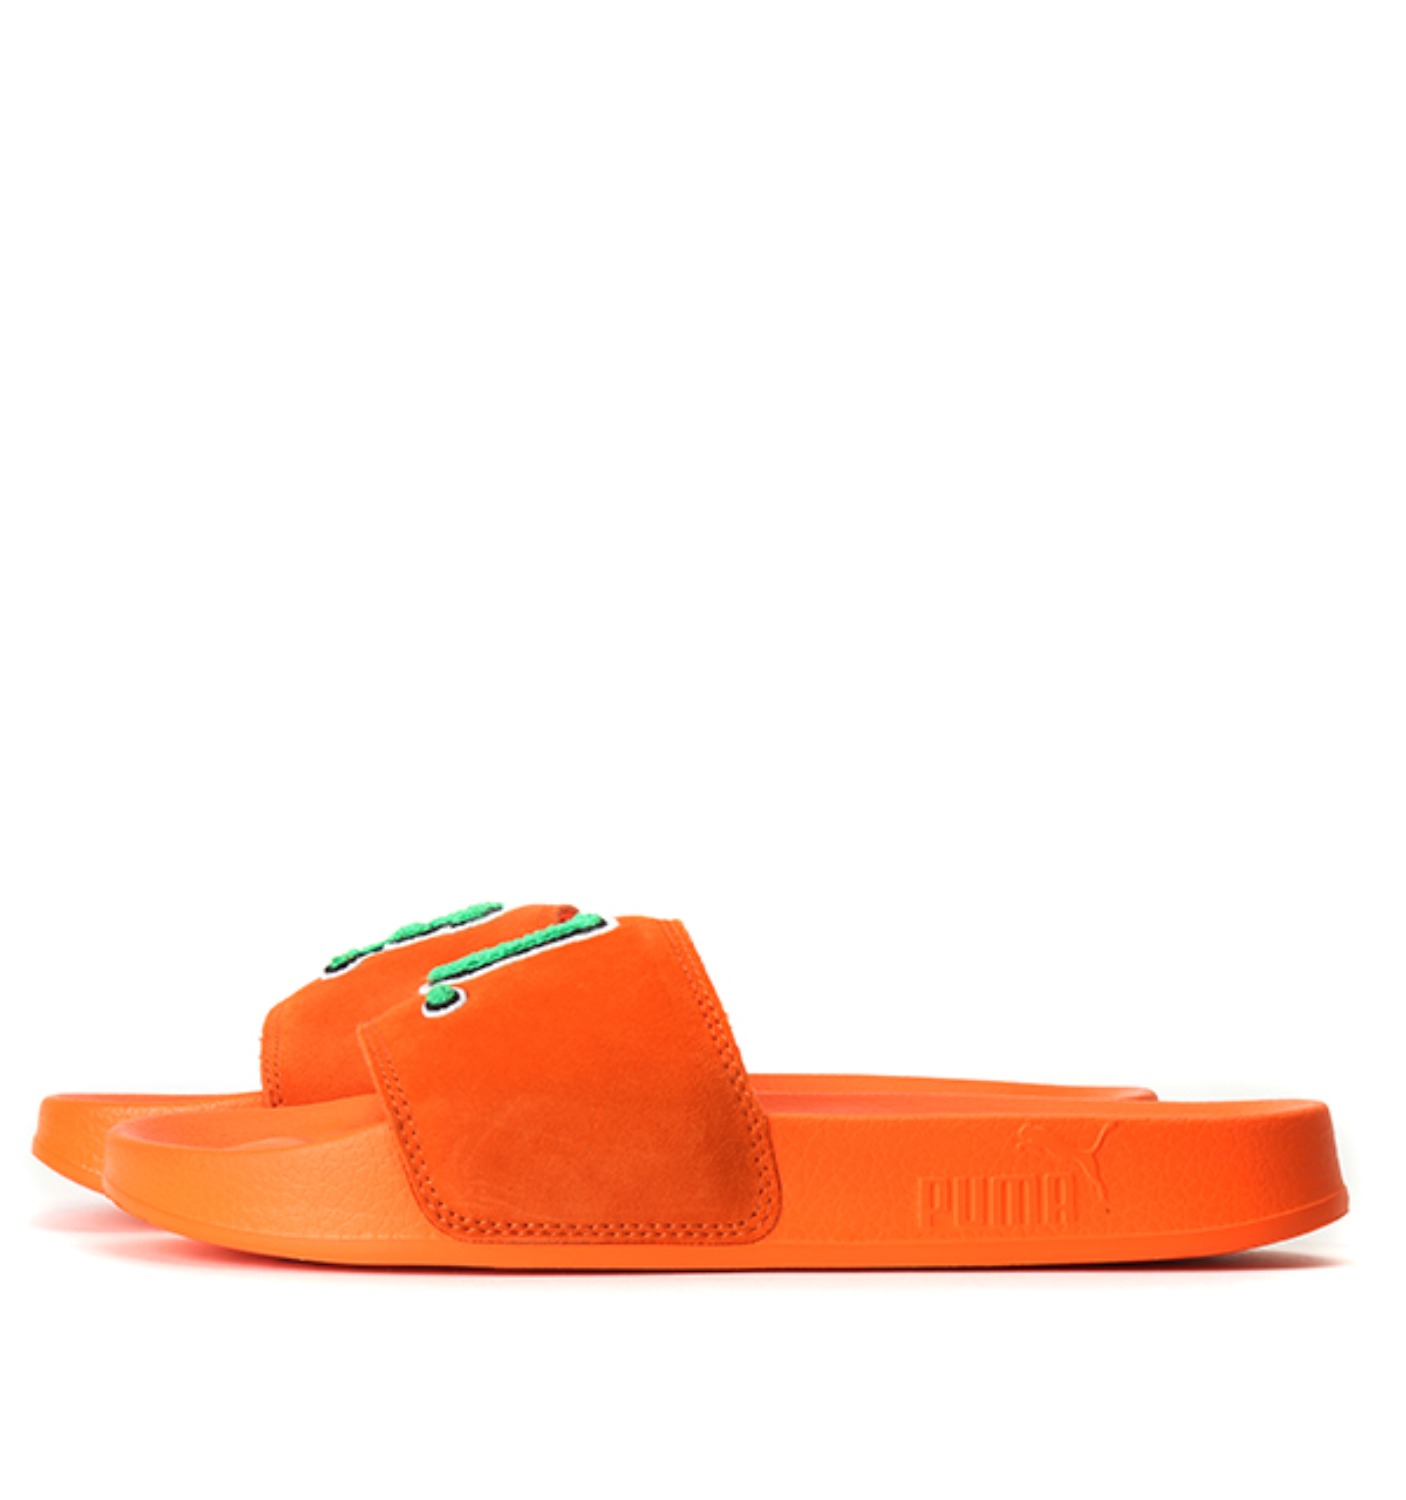 FENTY UNISEX SUEDE SLIDE SANDALS Scarlet Ibis-Bright Green